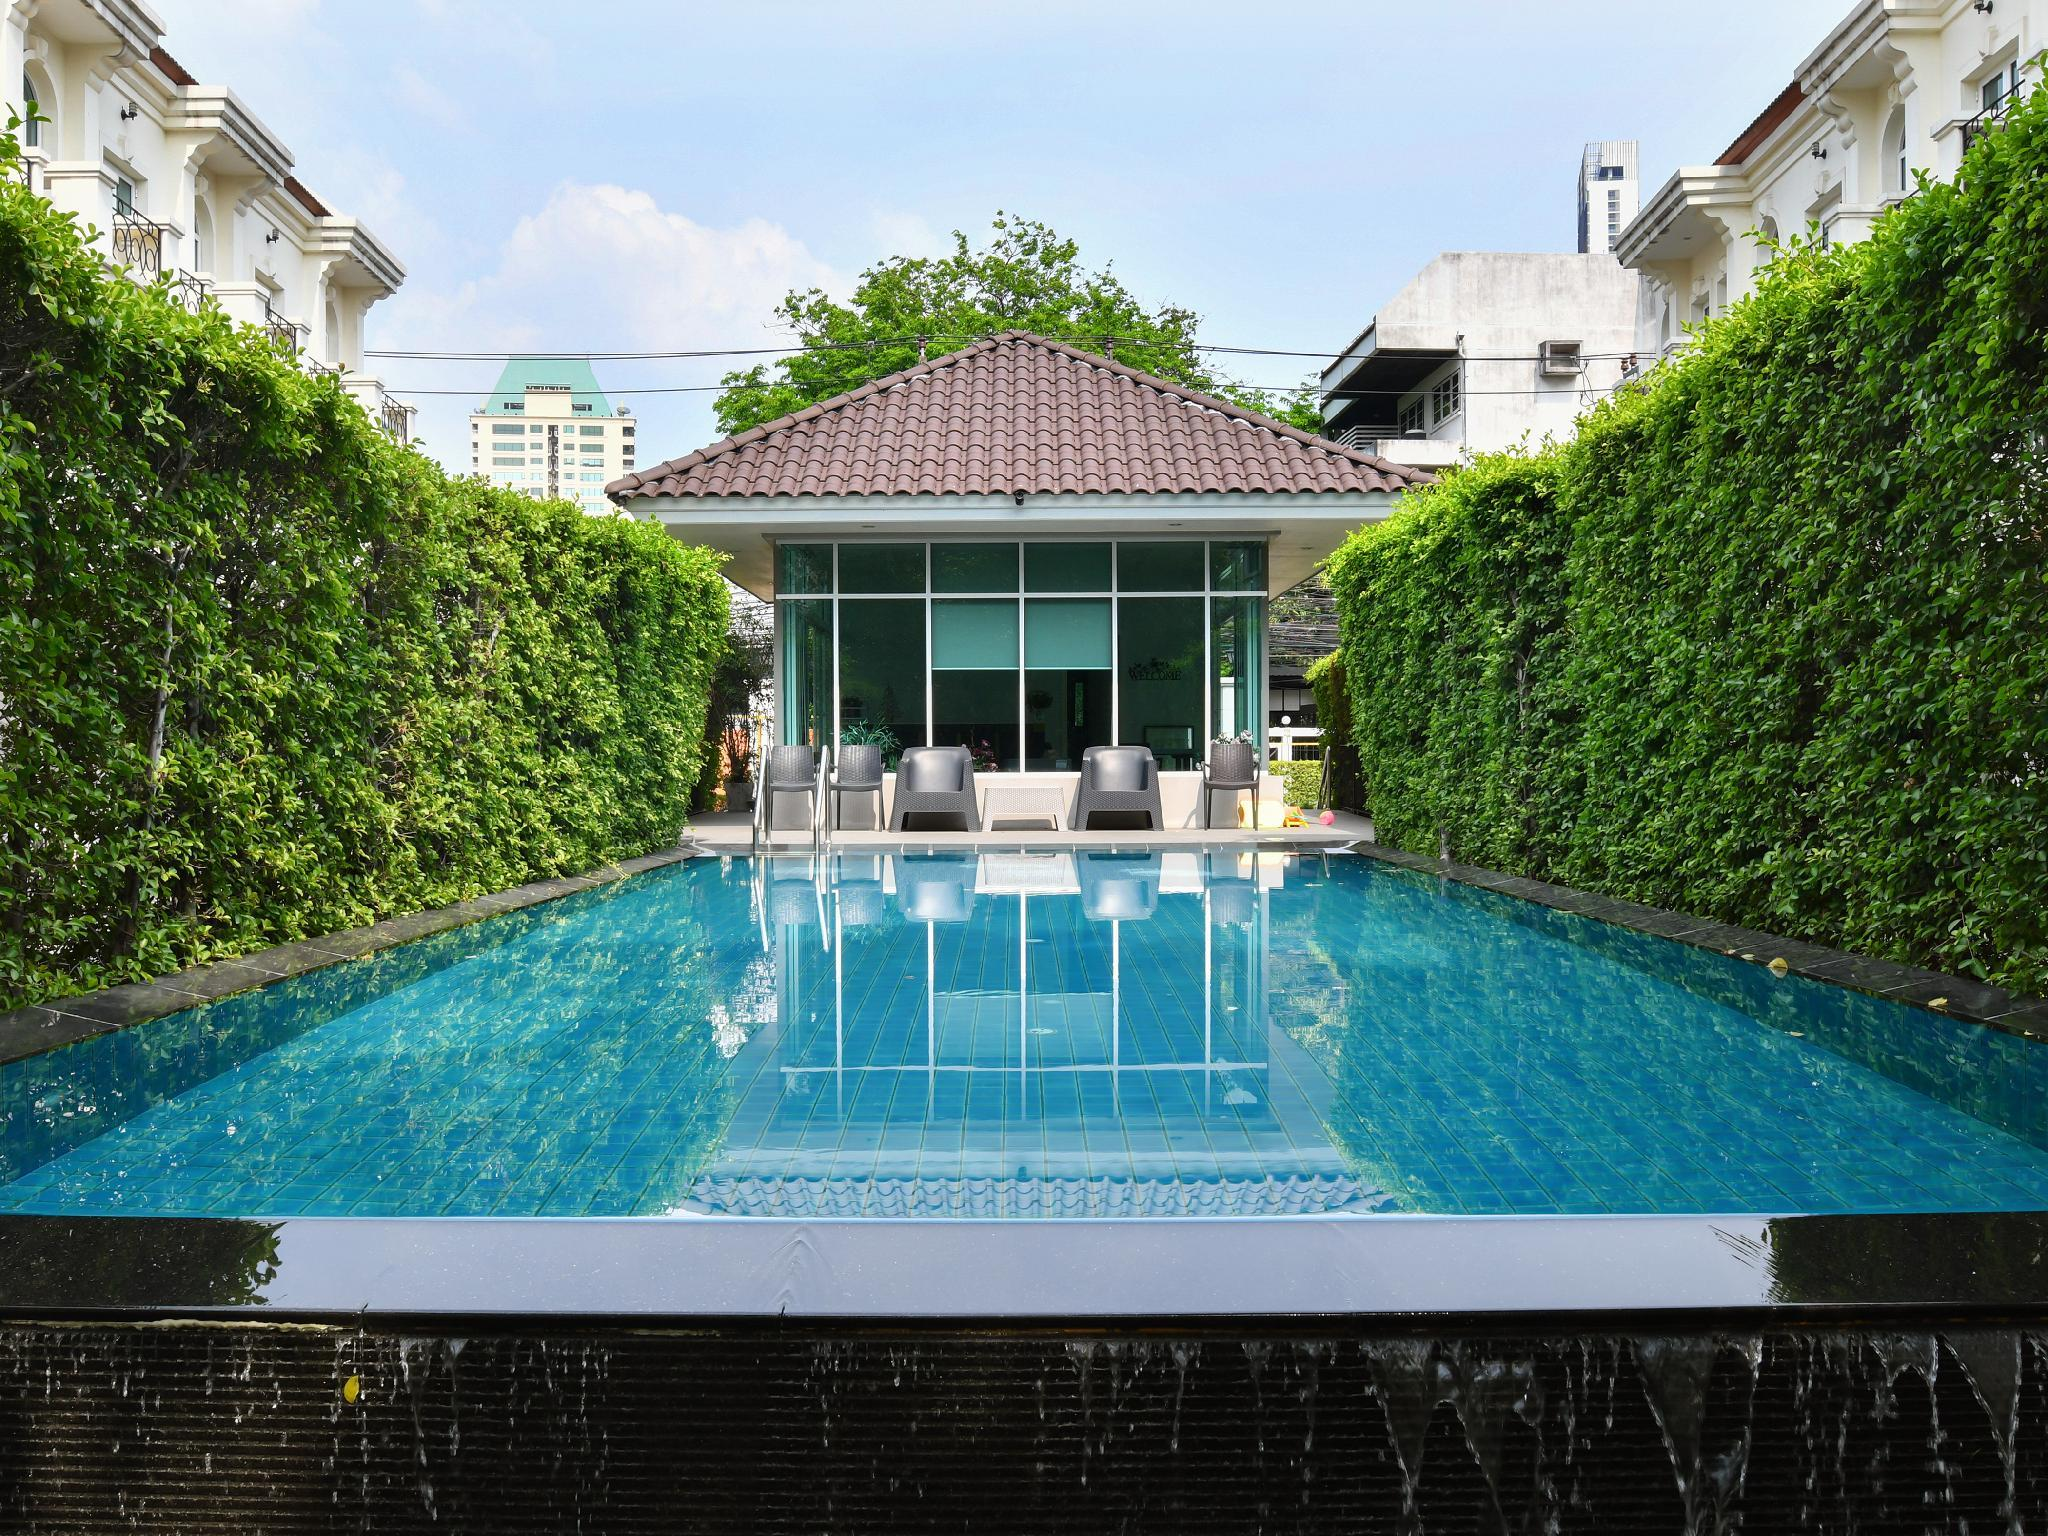 3 Bedrooms PerFect Home 401 At Sukhumvit 16